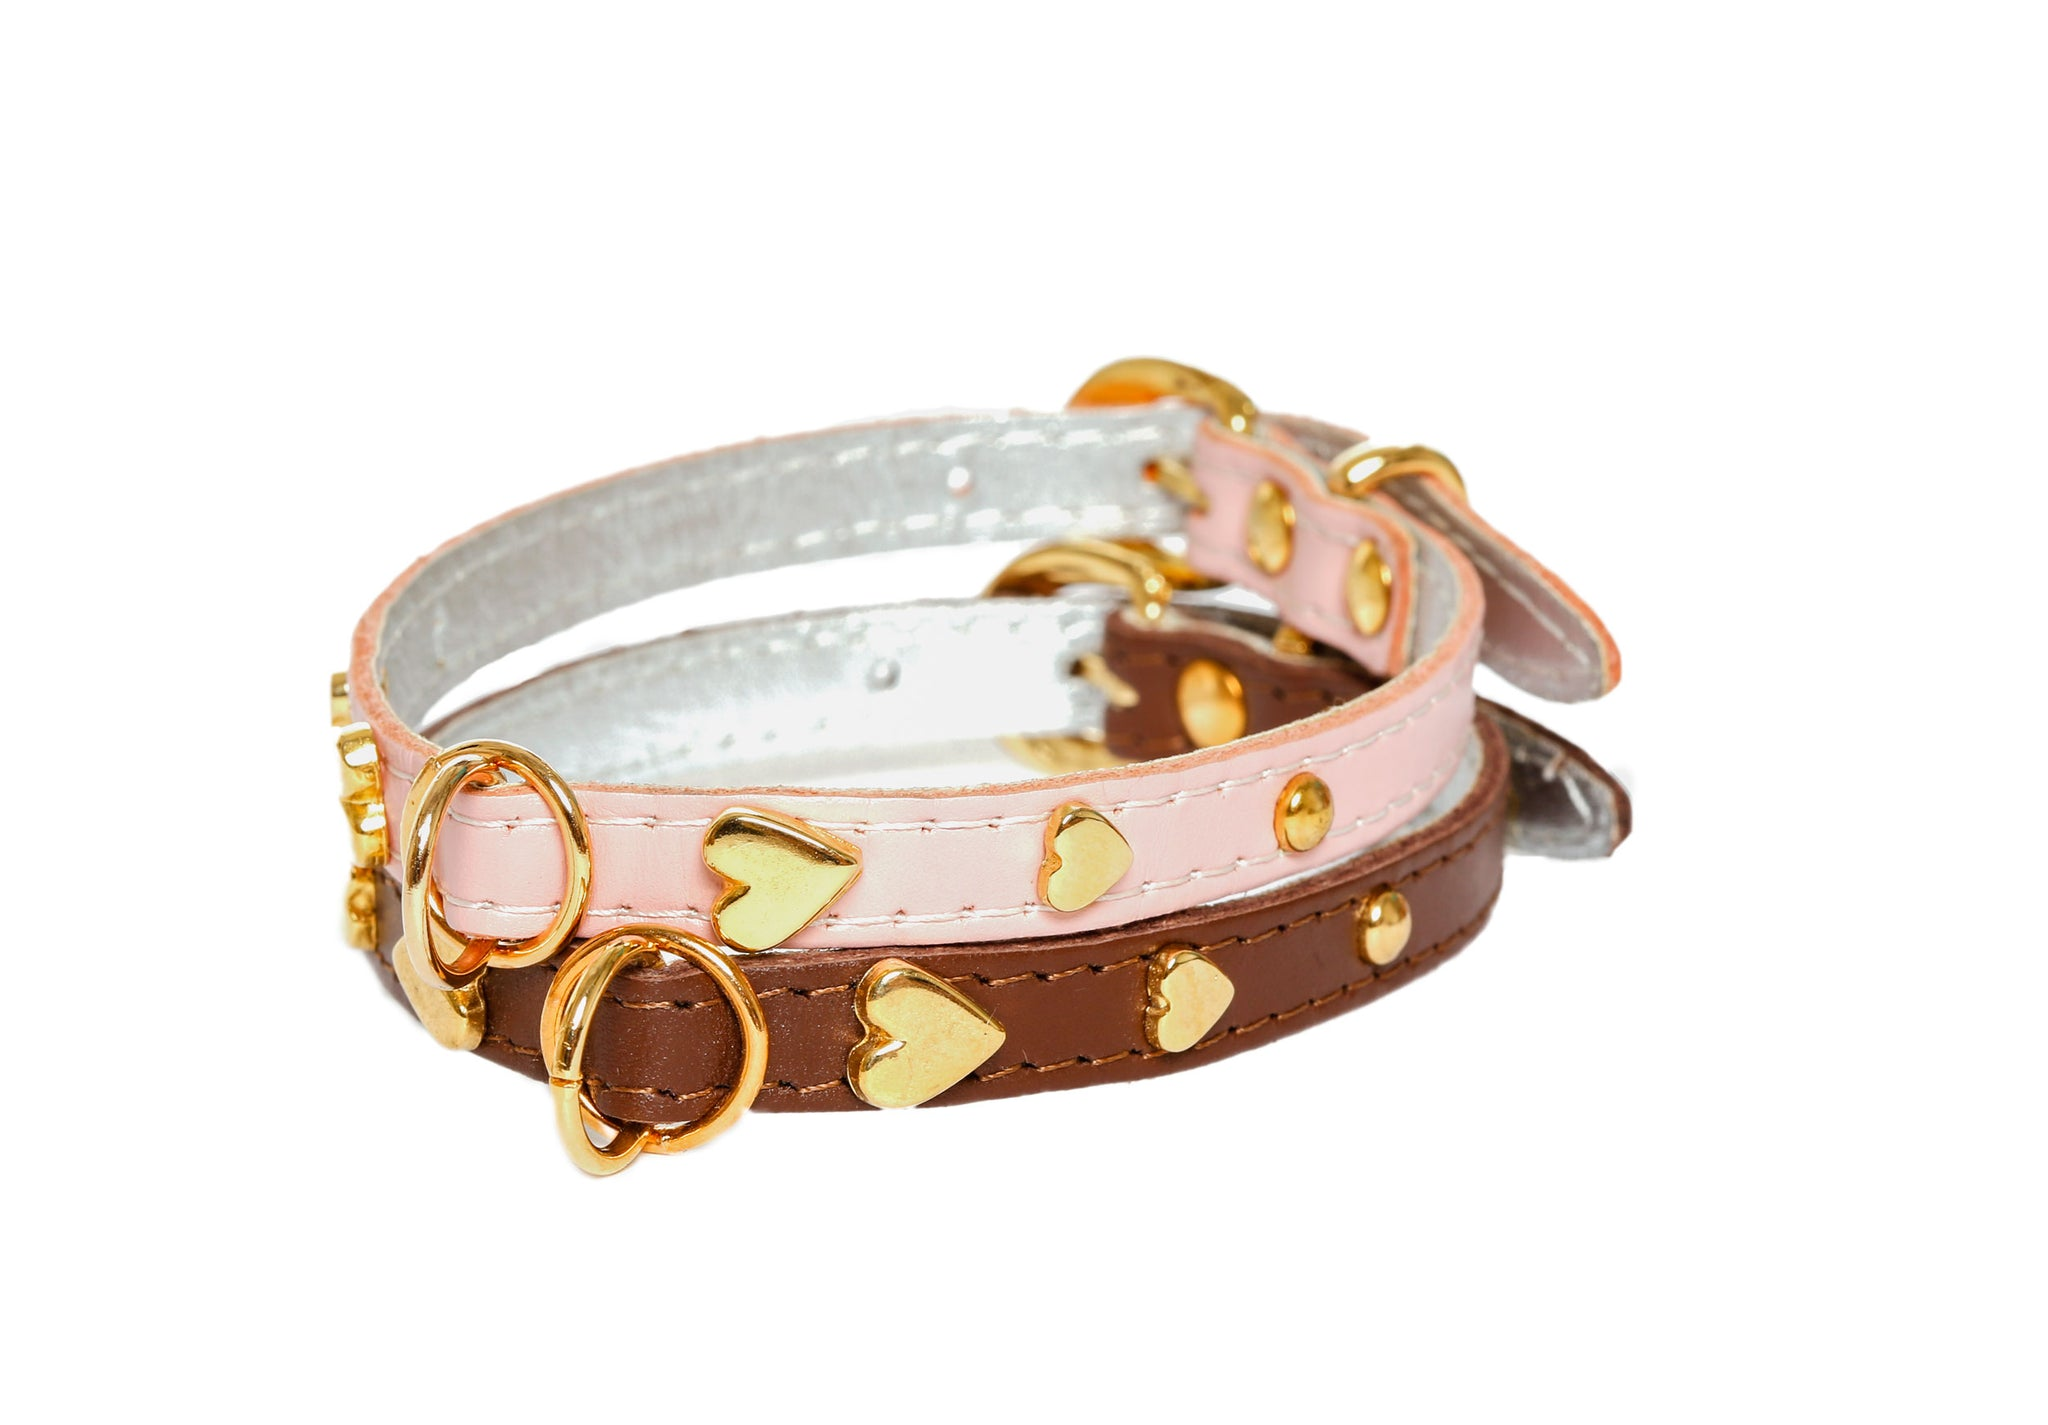 Dog Collars - Soft Leather Jophi Heart - 11 Color Options